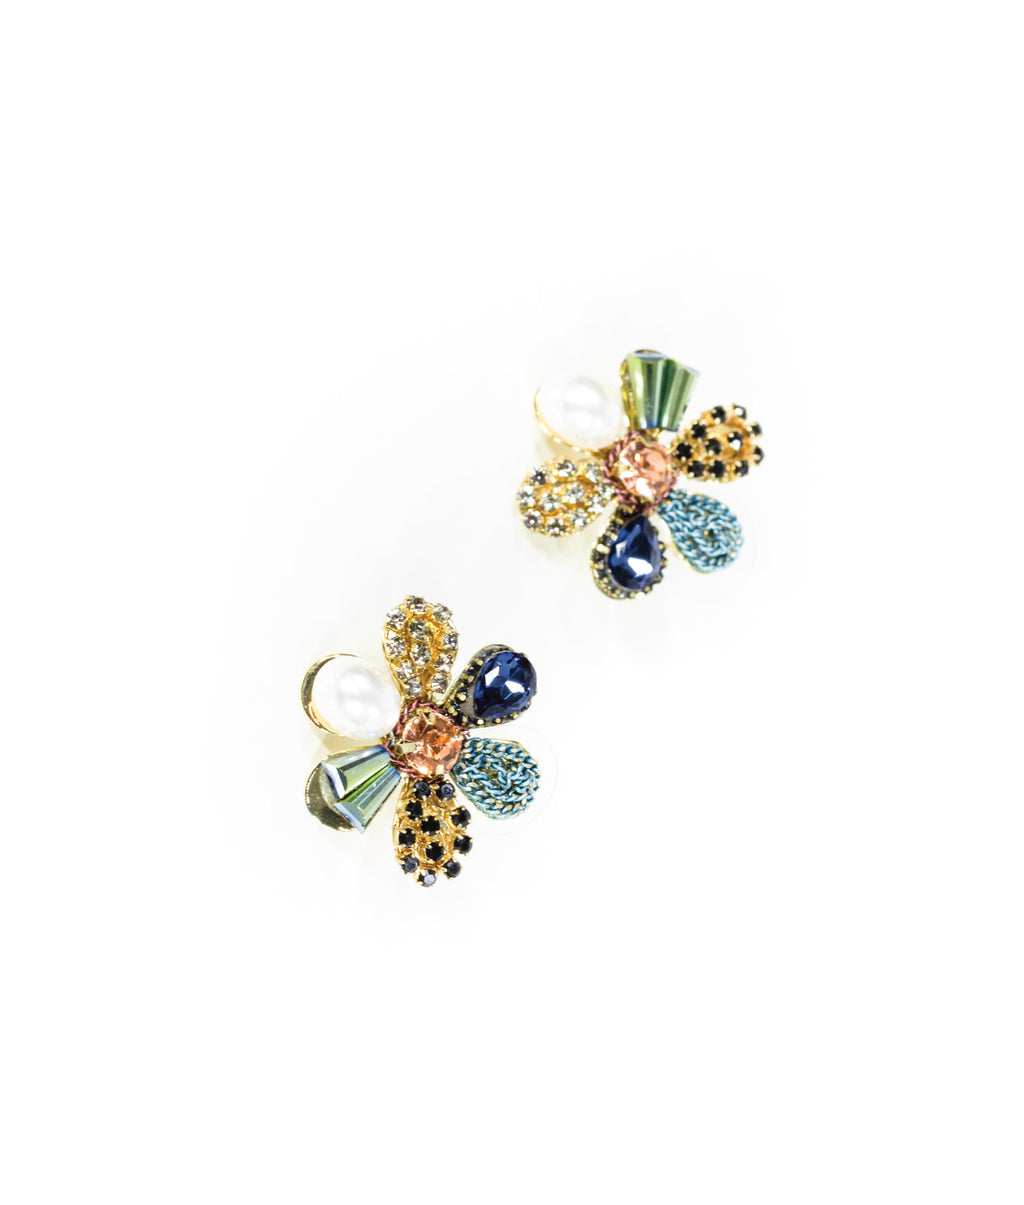 EARRINGS - Glamour Daisy